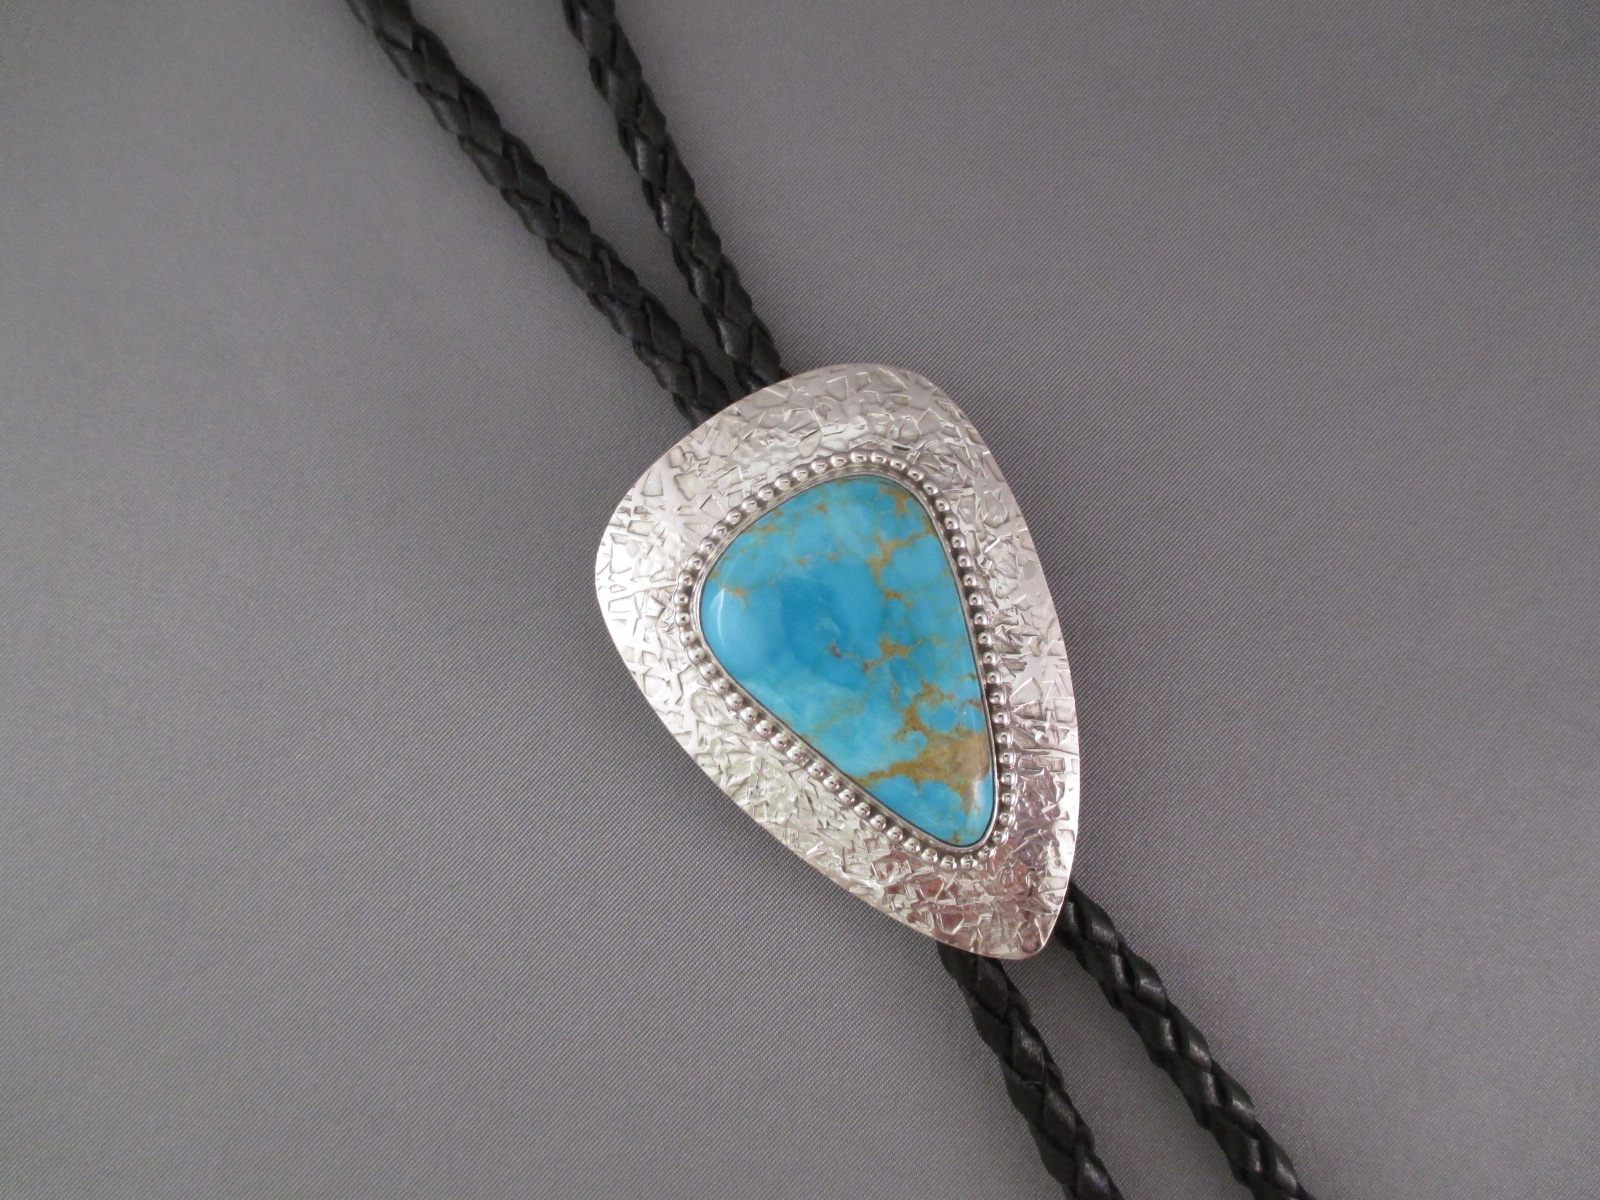 Sterling Silver Bolo Tie with Turquoise